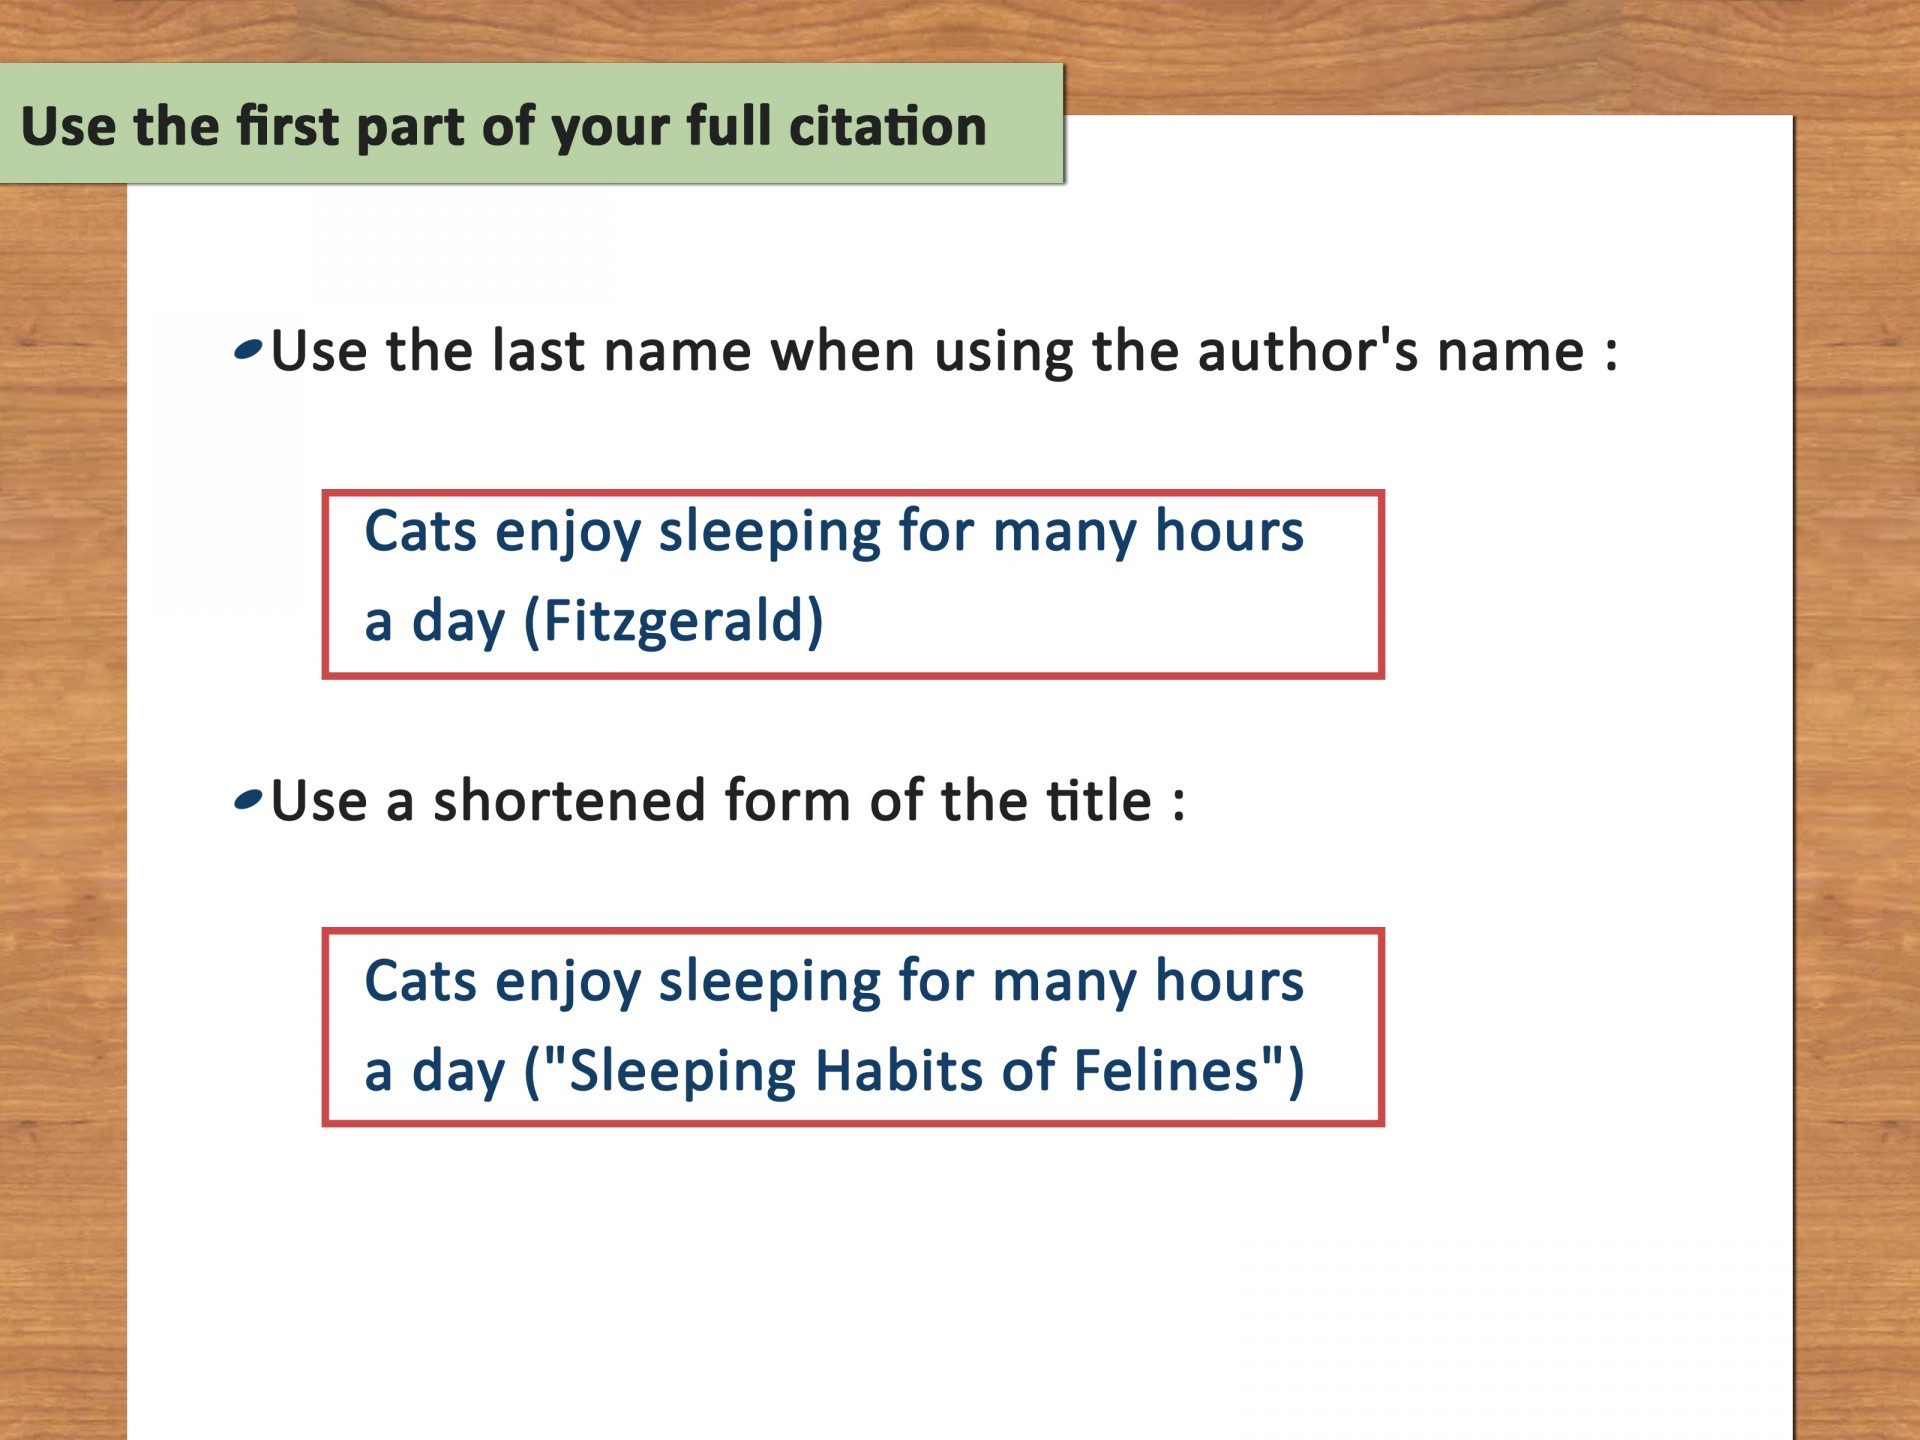 012 Cite Website Using Mla Format Step Version Research Paper In Text Wonderful Citations 1920